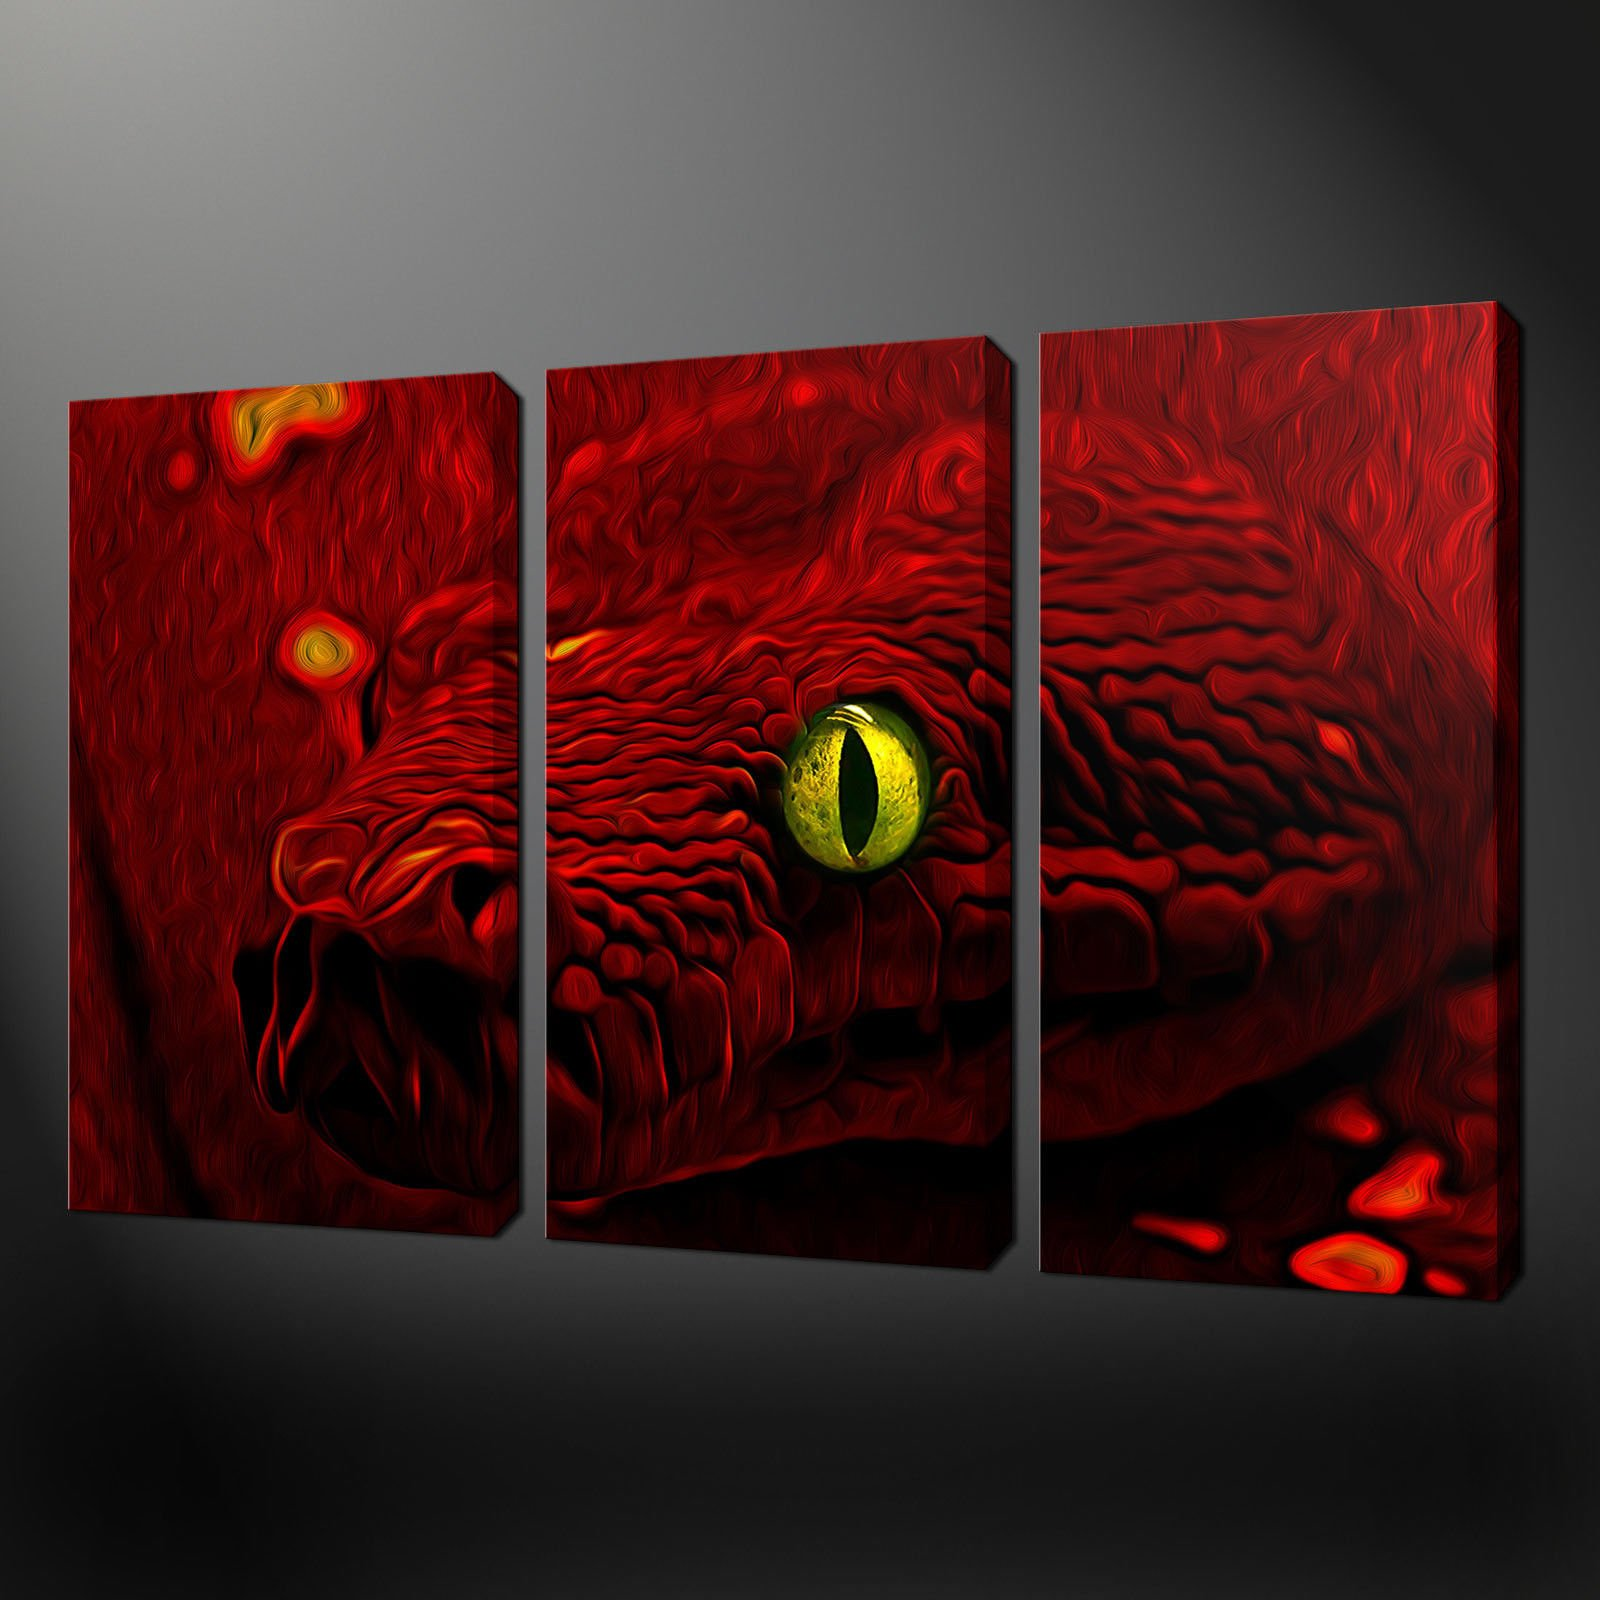 Wall Art Canvas Red : Red snake painting style canvas wall art pictures print